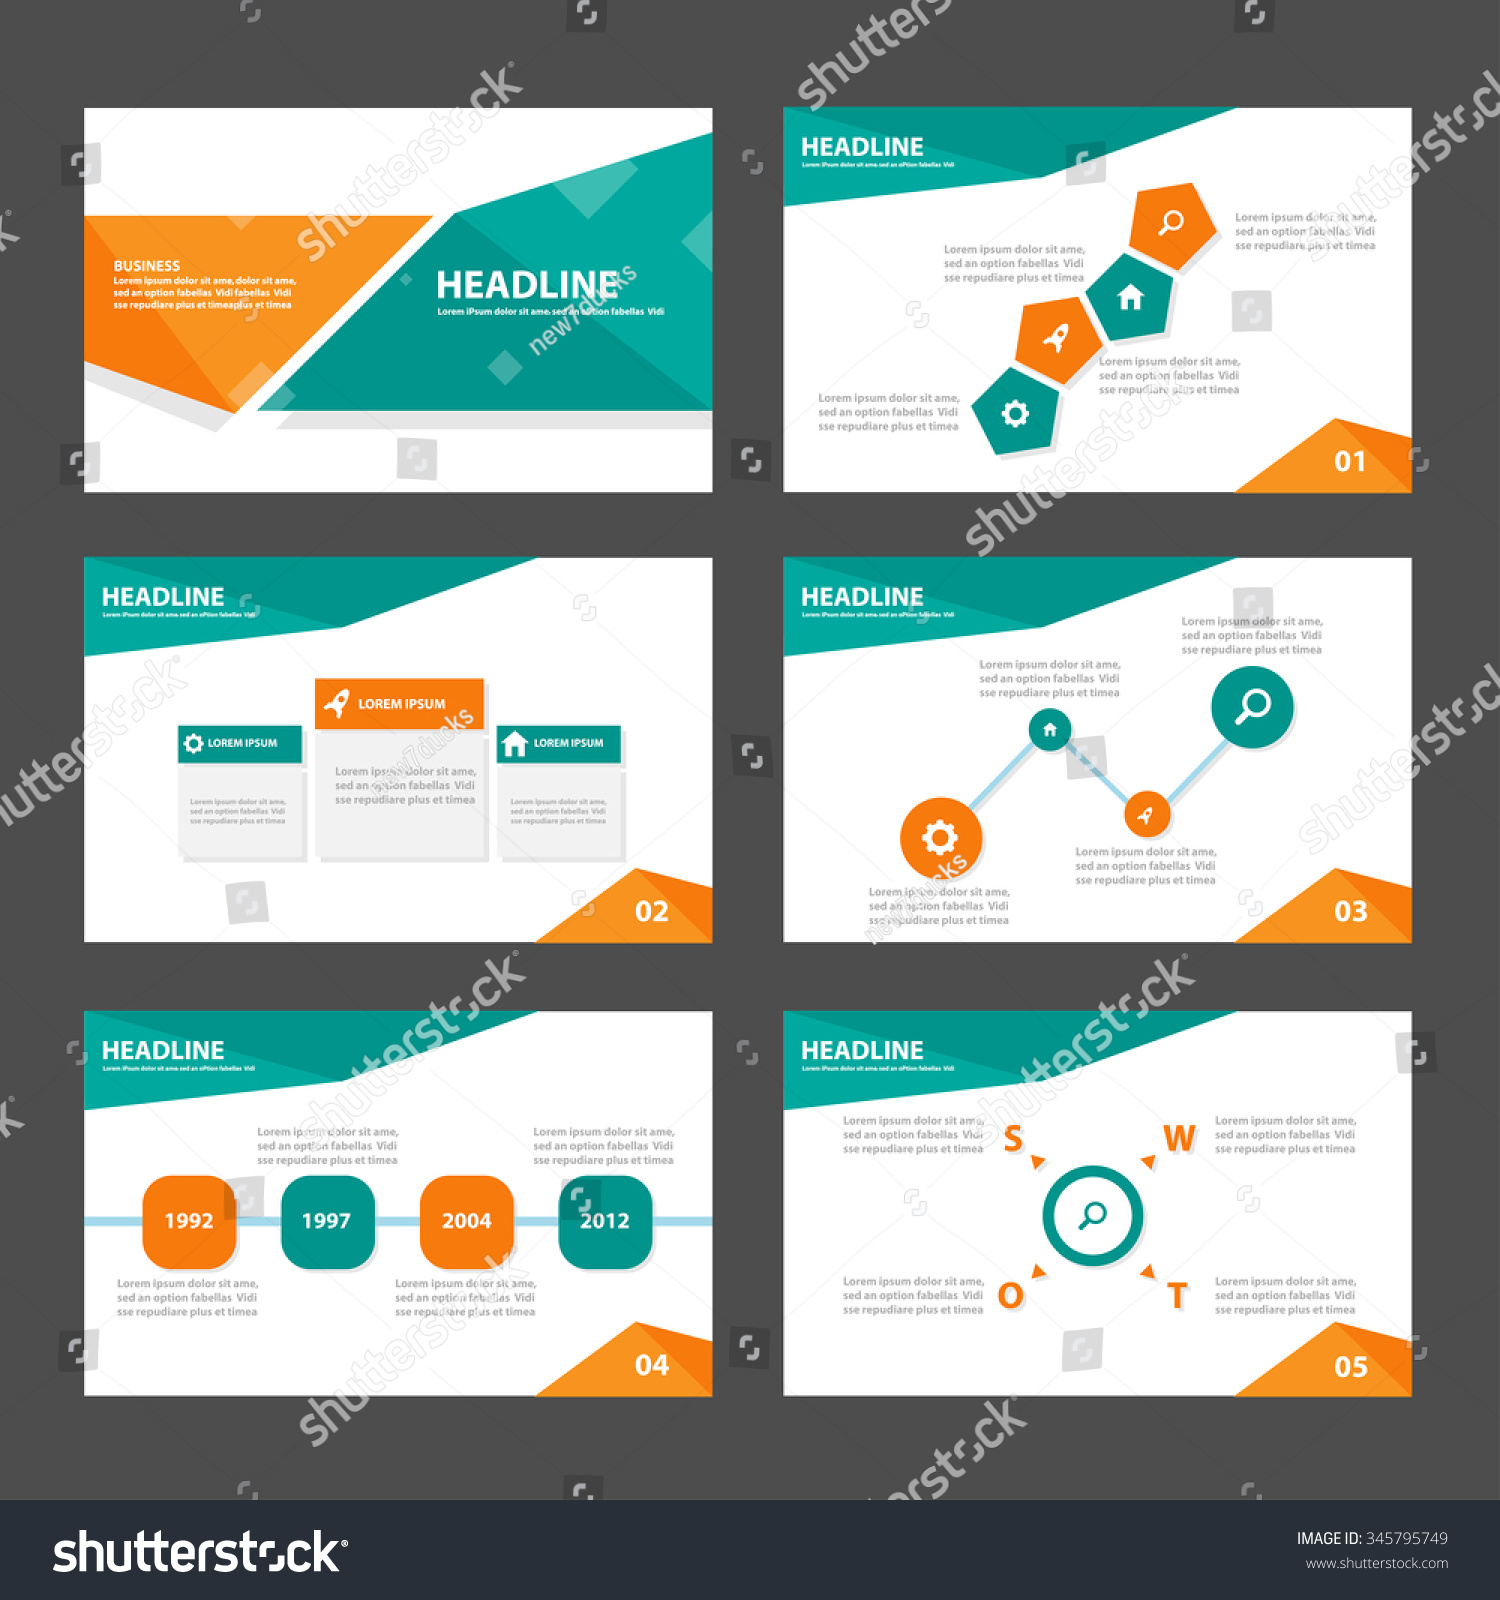 green orange presentation template infographic elements stock vector 345795749 shutterstock. Black Bedroom Furniture Sets. Home Design Ideas